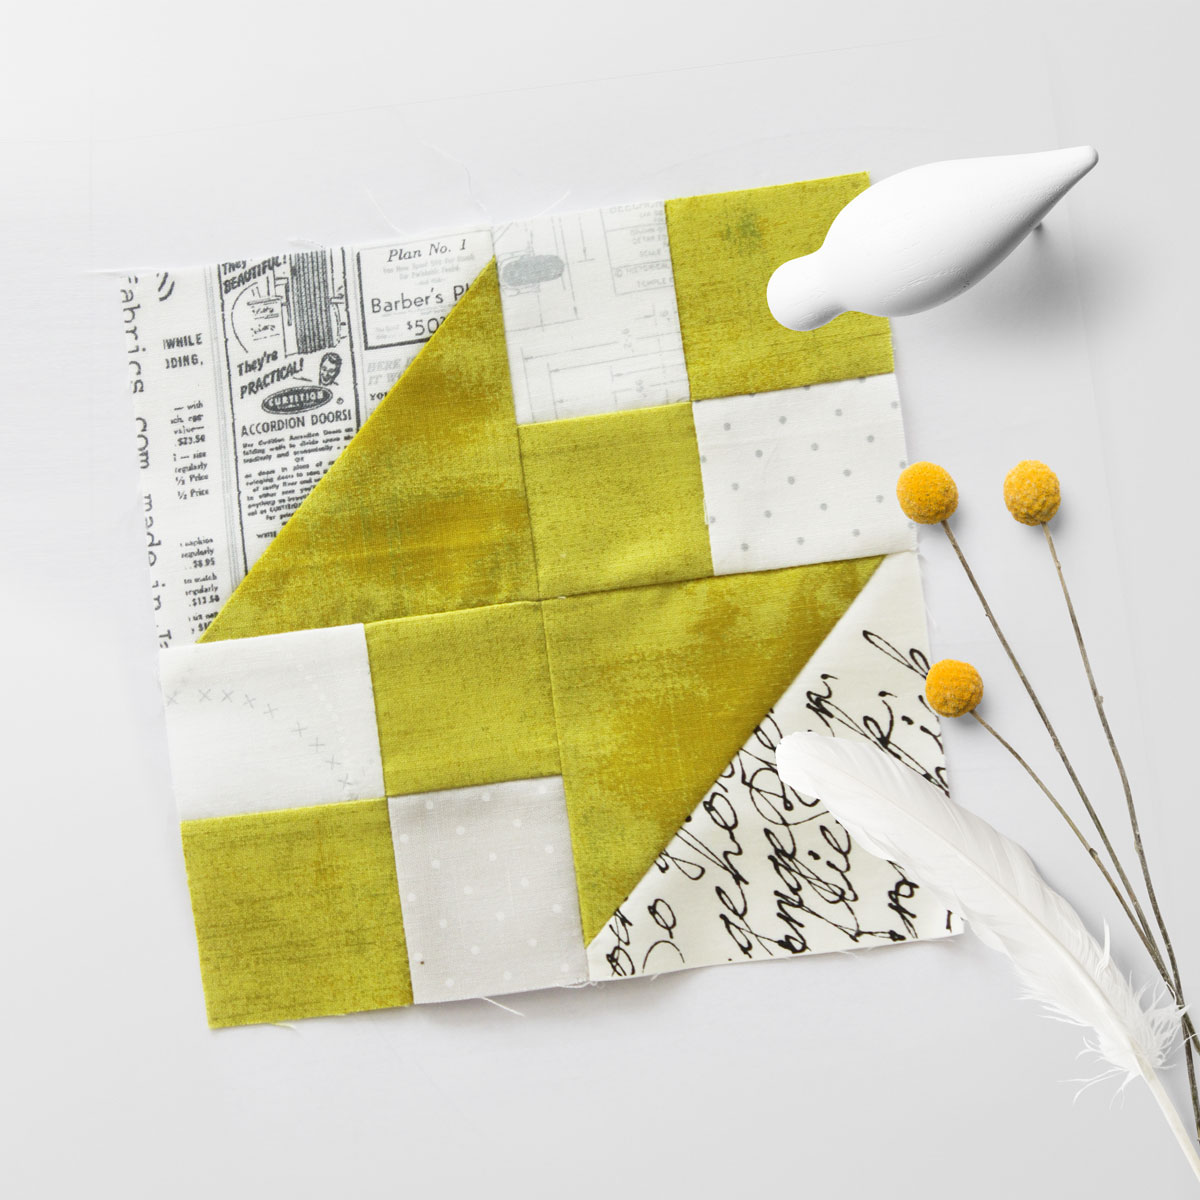 Free quilt along Blockheads 2018, Block 15: Corner Pocket Fabrics used in the block are from Moda, Basic Grey GRUNGE and Zen Chic PAPER